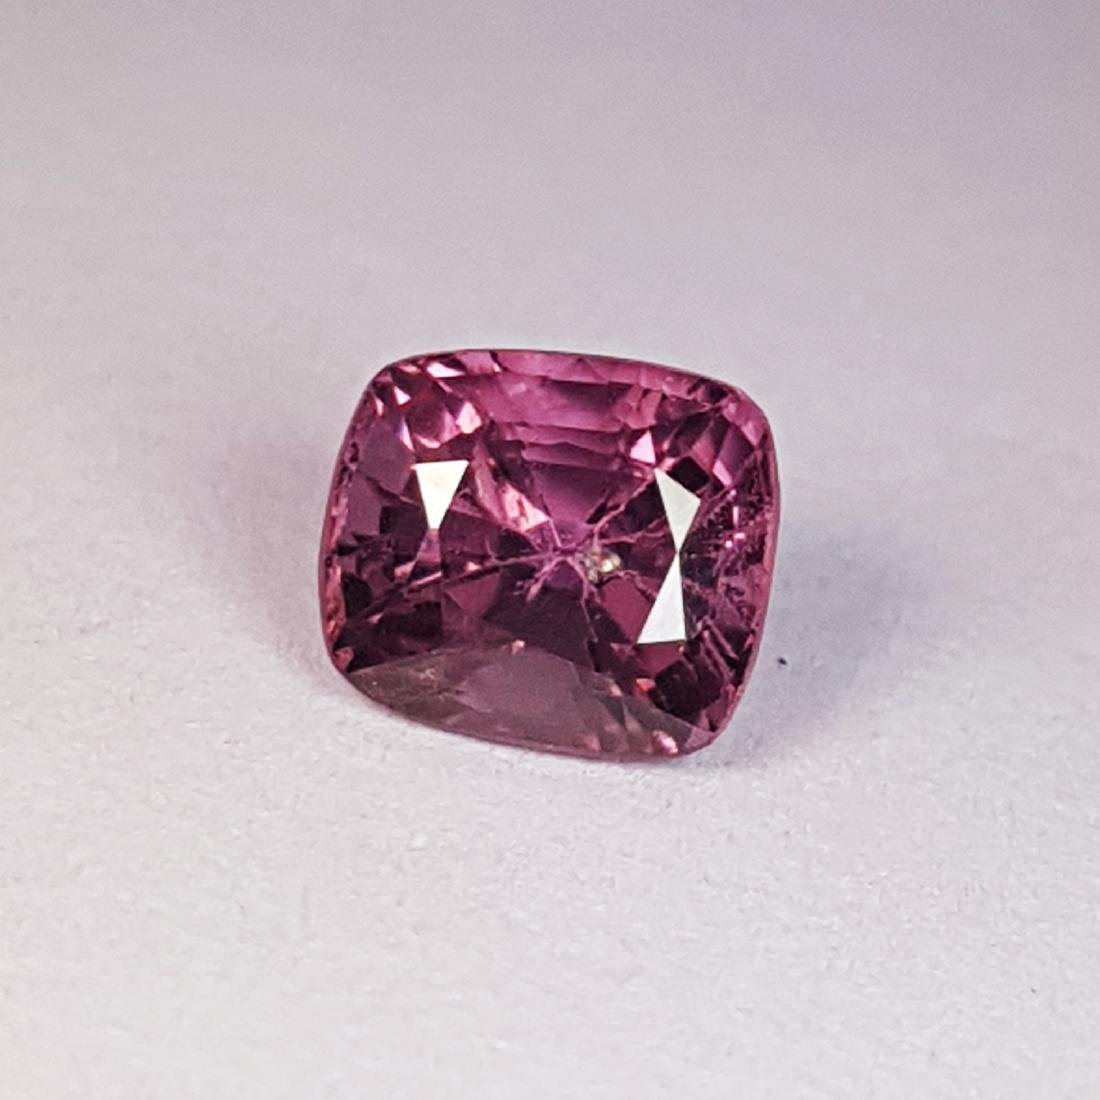 Spinel - 1.23 ct - 2